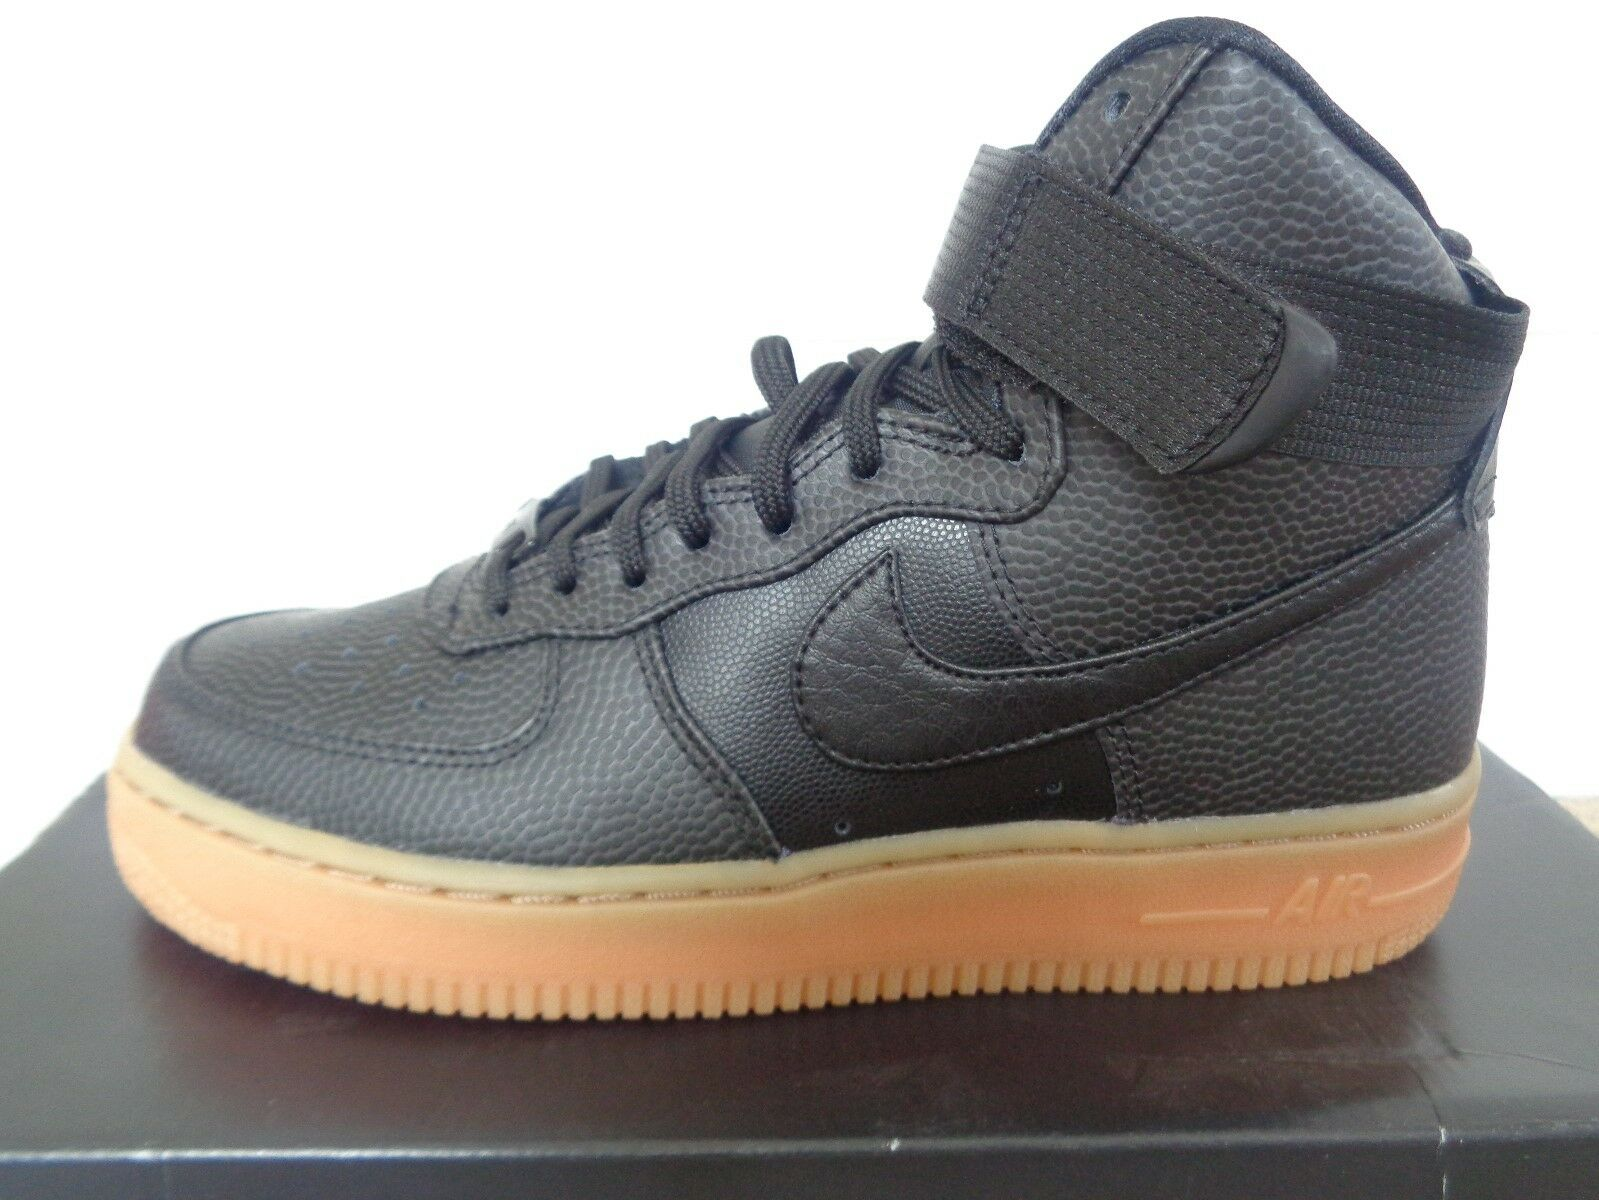 Nike Air Force 1 Hi Hi 1 Se Wmns Baskets Baskets UK 4.5 EU 38 US 7 NEW IN BOX c79e8b